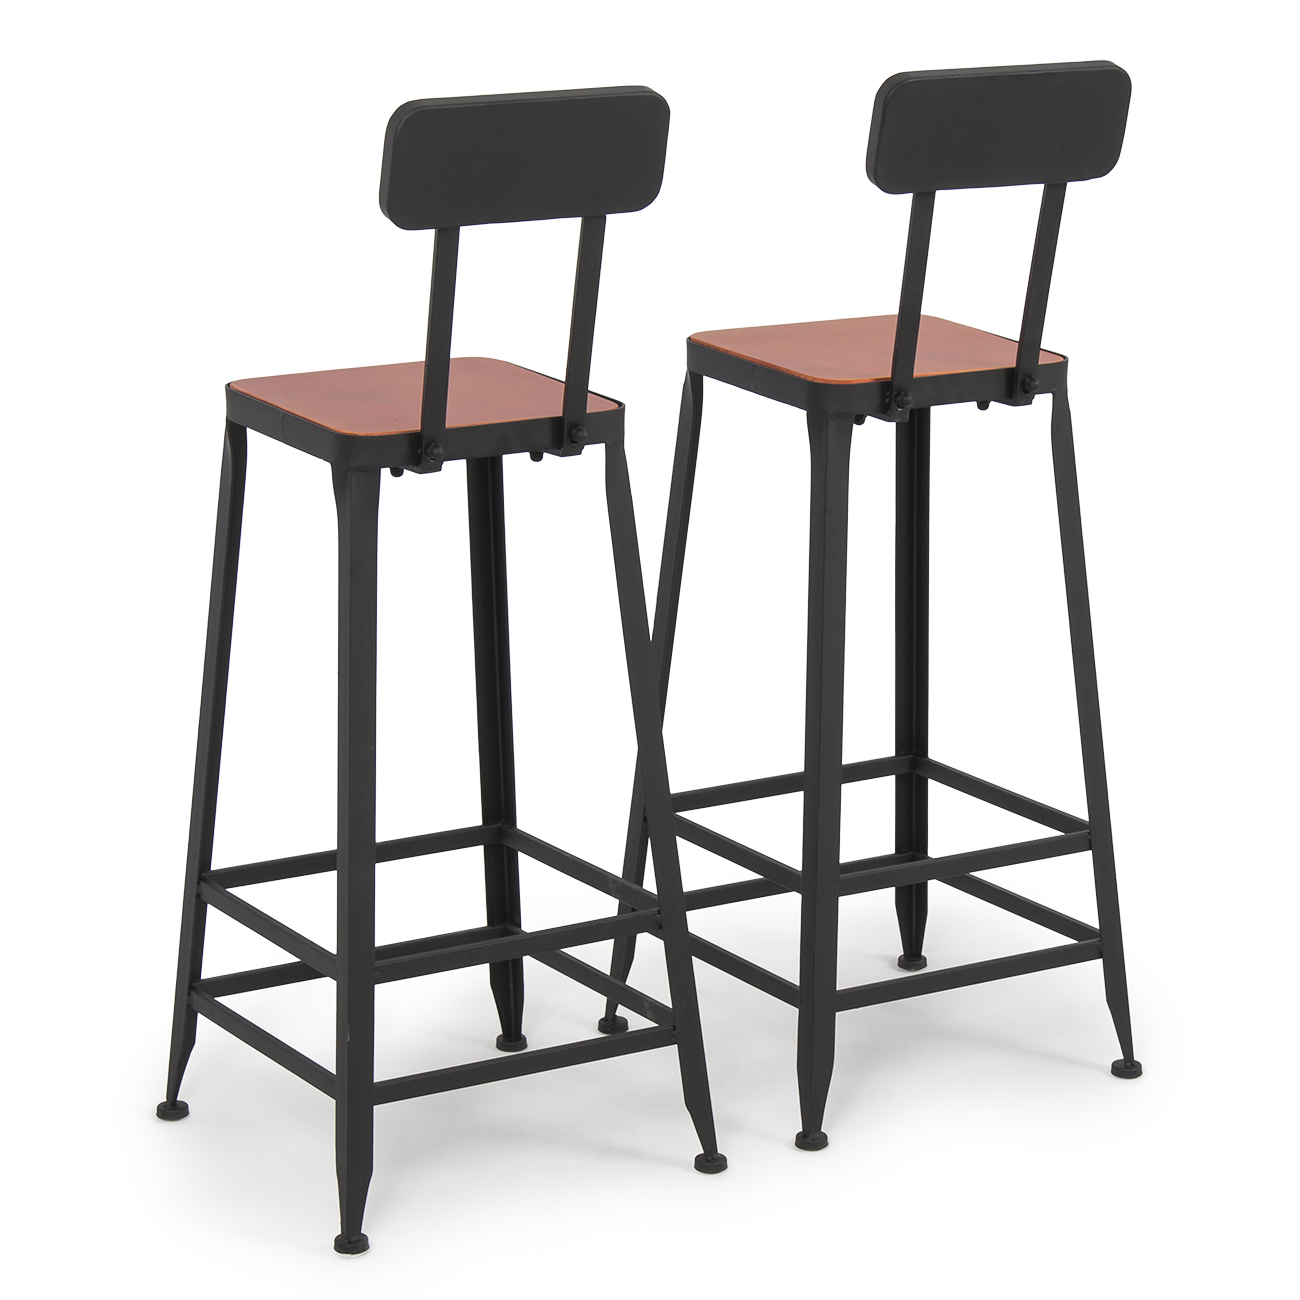 Industrial Counter Height Bar Stools Industrial Bar Stools Barstools Wood Counter Top Height